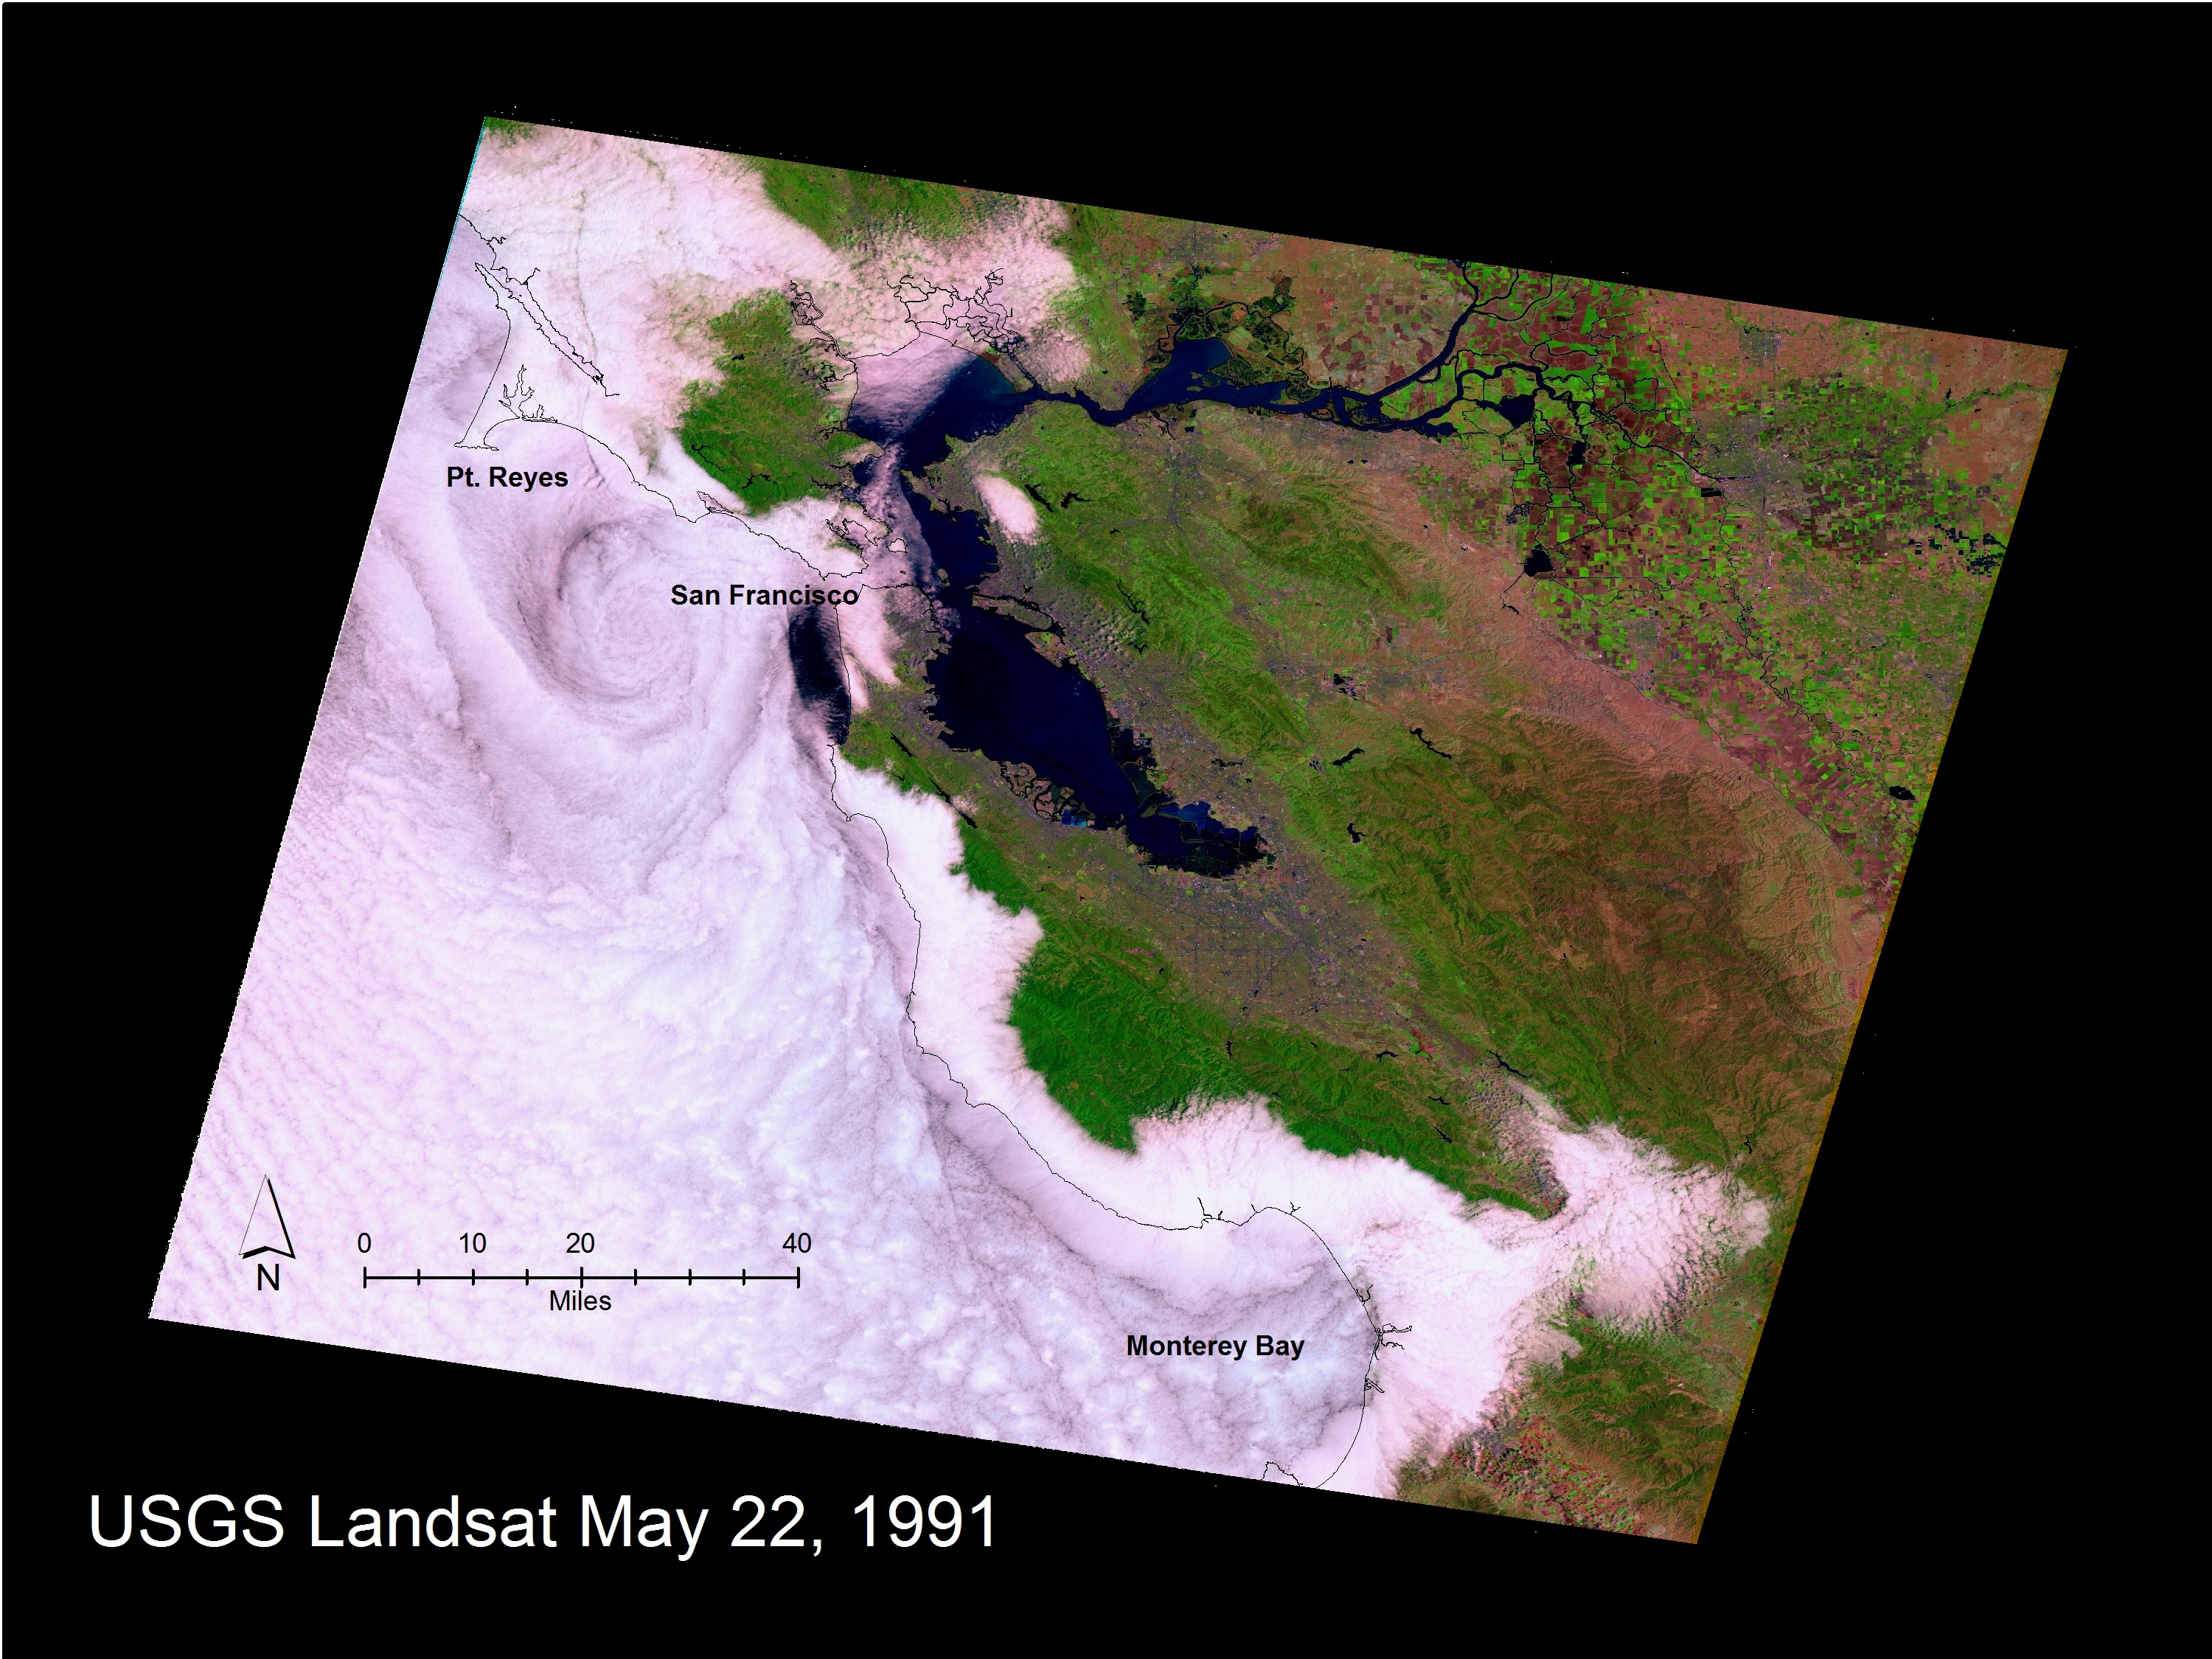 A Landsat image from May 22, 1991, shows the relative position of the coastline, mapped as a black line on top of the marine stratus and stratocumulus cloud layer along the San Francisco to Monterey, California, coastline. The effect of coastal mountains that form a topographic barrier keeping the marine layer offshore is visible, as are the gaps north of Point Reyes and to the east of Monterey Bay through which the clouds penetrate. A complex eddy pattern can be seen offshore of San Francisco in the lee of the Point Reyes peninsula that juts out to sea.